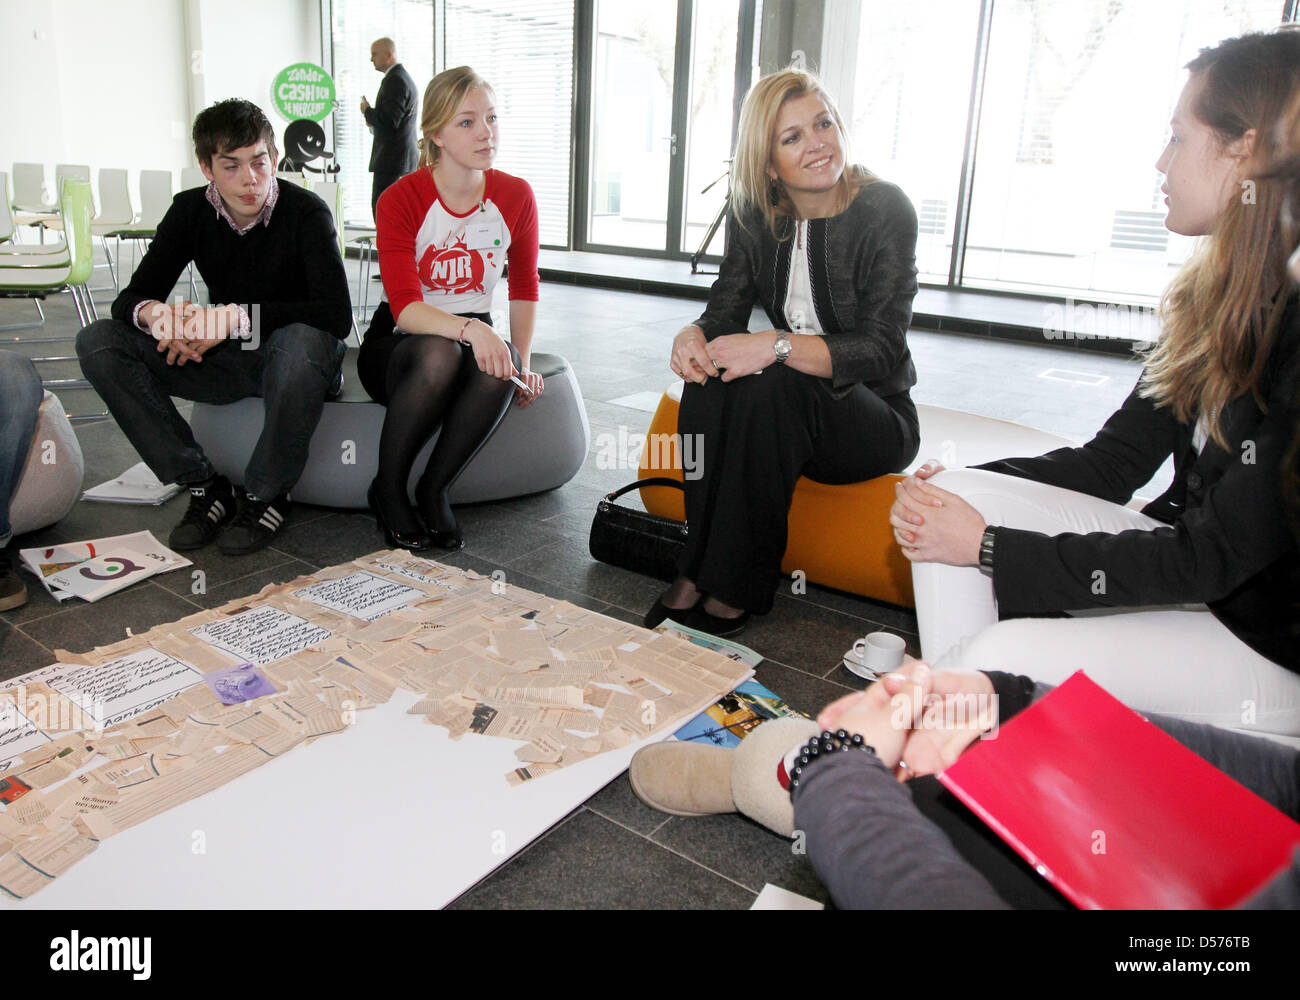 Princess Maxima of the Neterlands (C) attends a brainstorming session with younger people about money at the Dutch - Stock Image